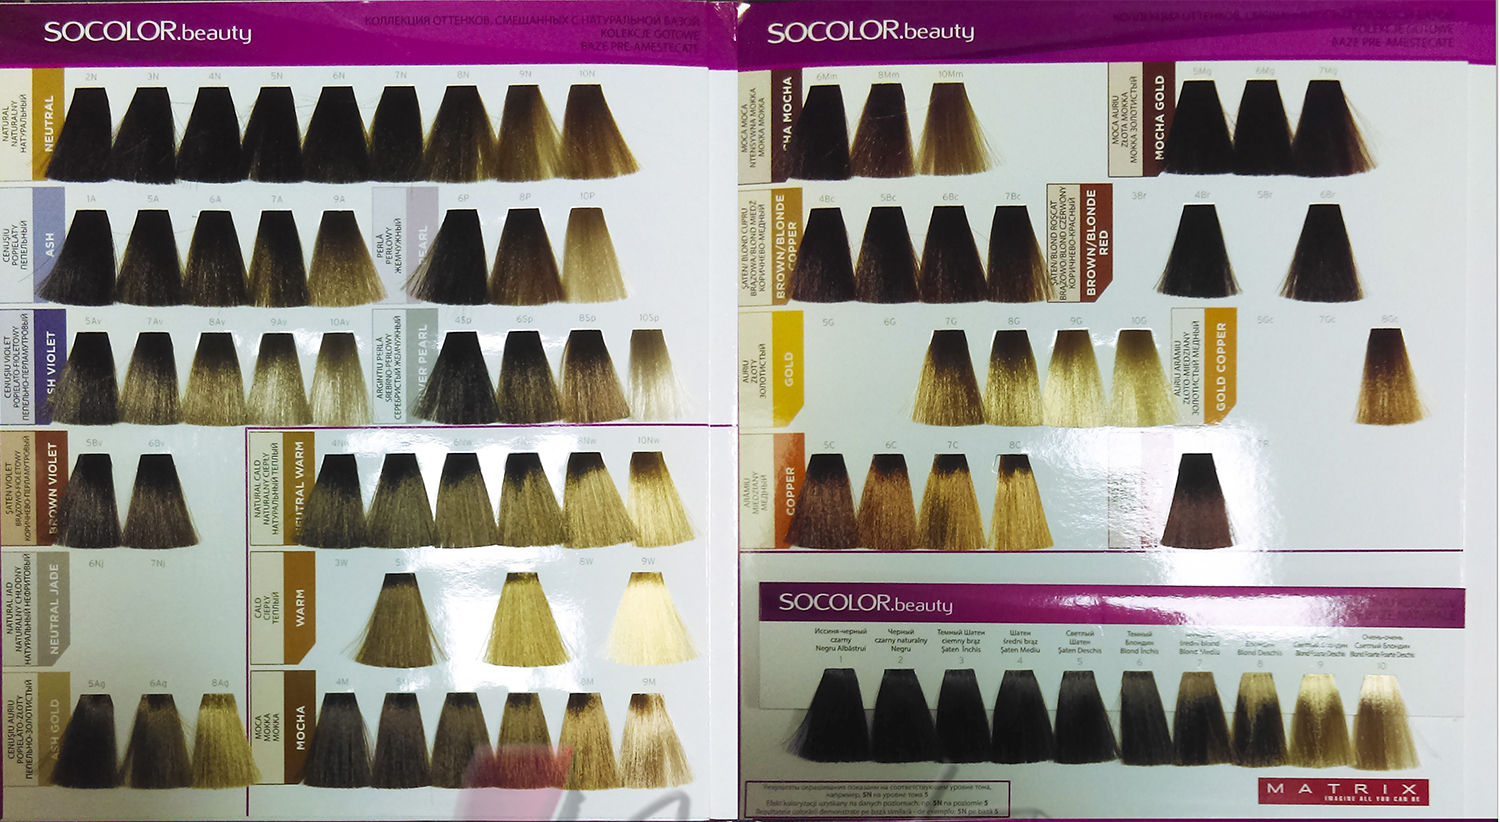 Matrix socolor beauty kraska palitra banner1 annet shop ru